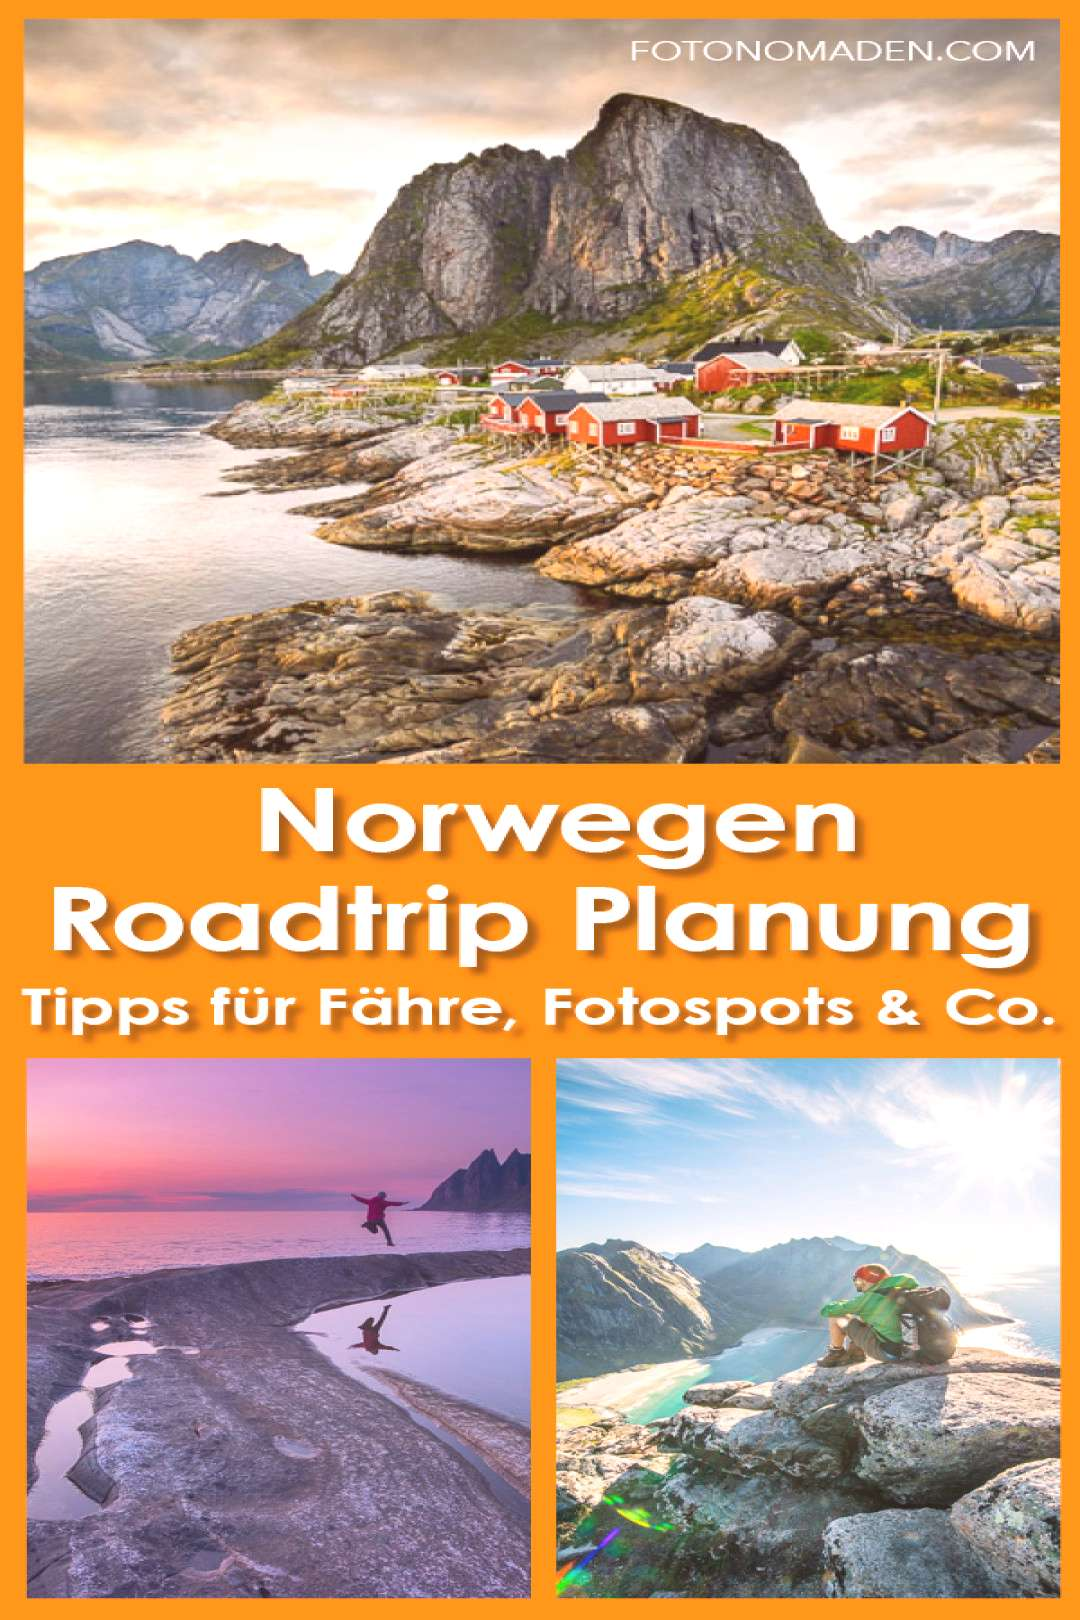 Roadtrip Norway - The best tips amp photo spots FOTONOMADEN.COM - Tips for arriving by ferry by car